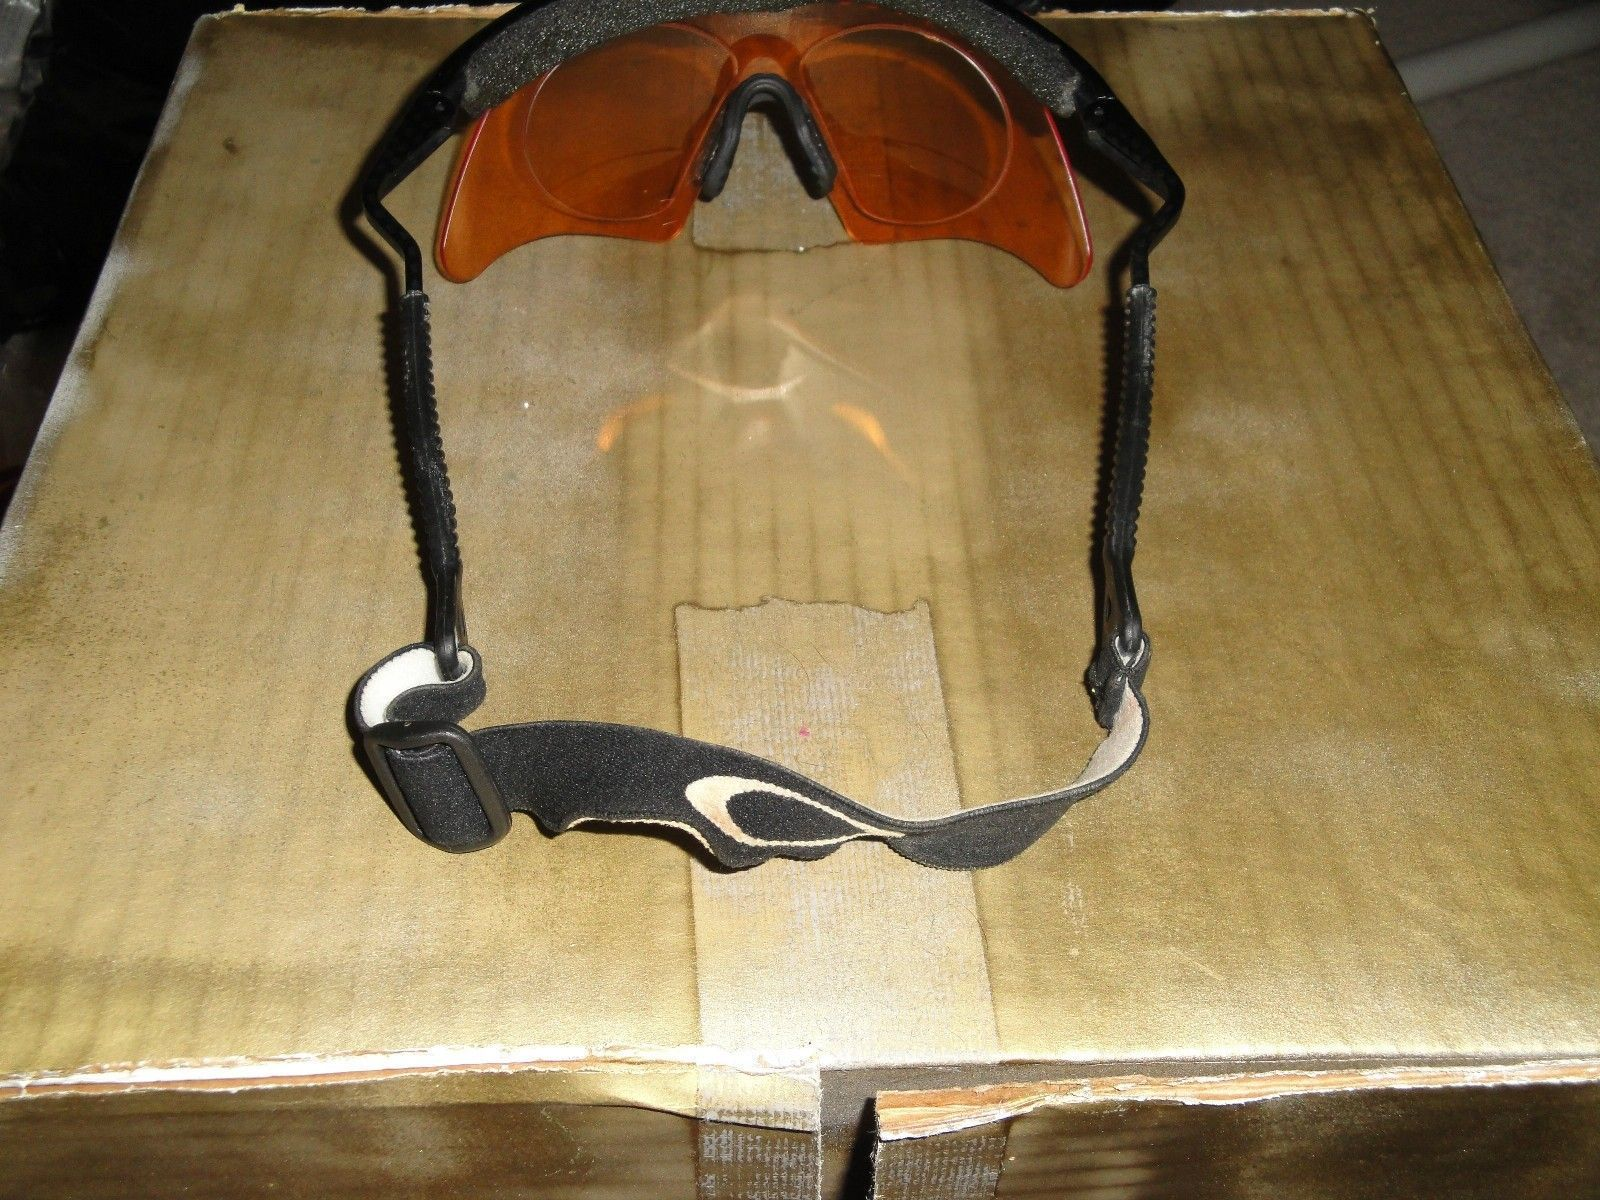 Unknown Glasses - unknown_2_www.kepfeltoltes.hu_.jpg